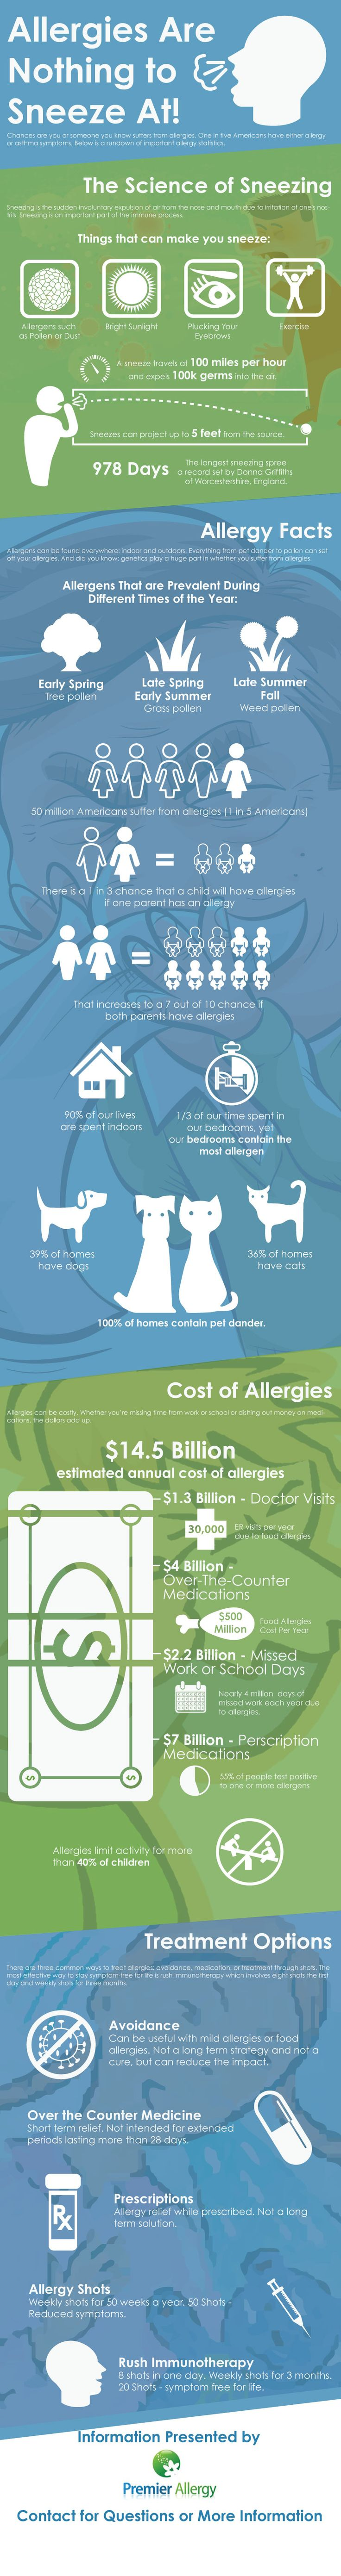 Allergies are Nothing to Sneeze At!